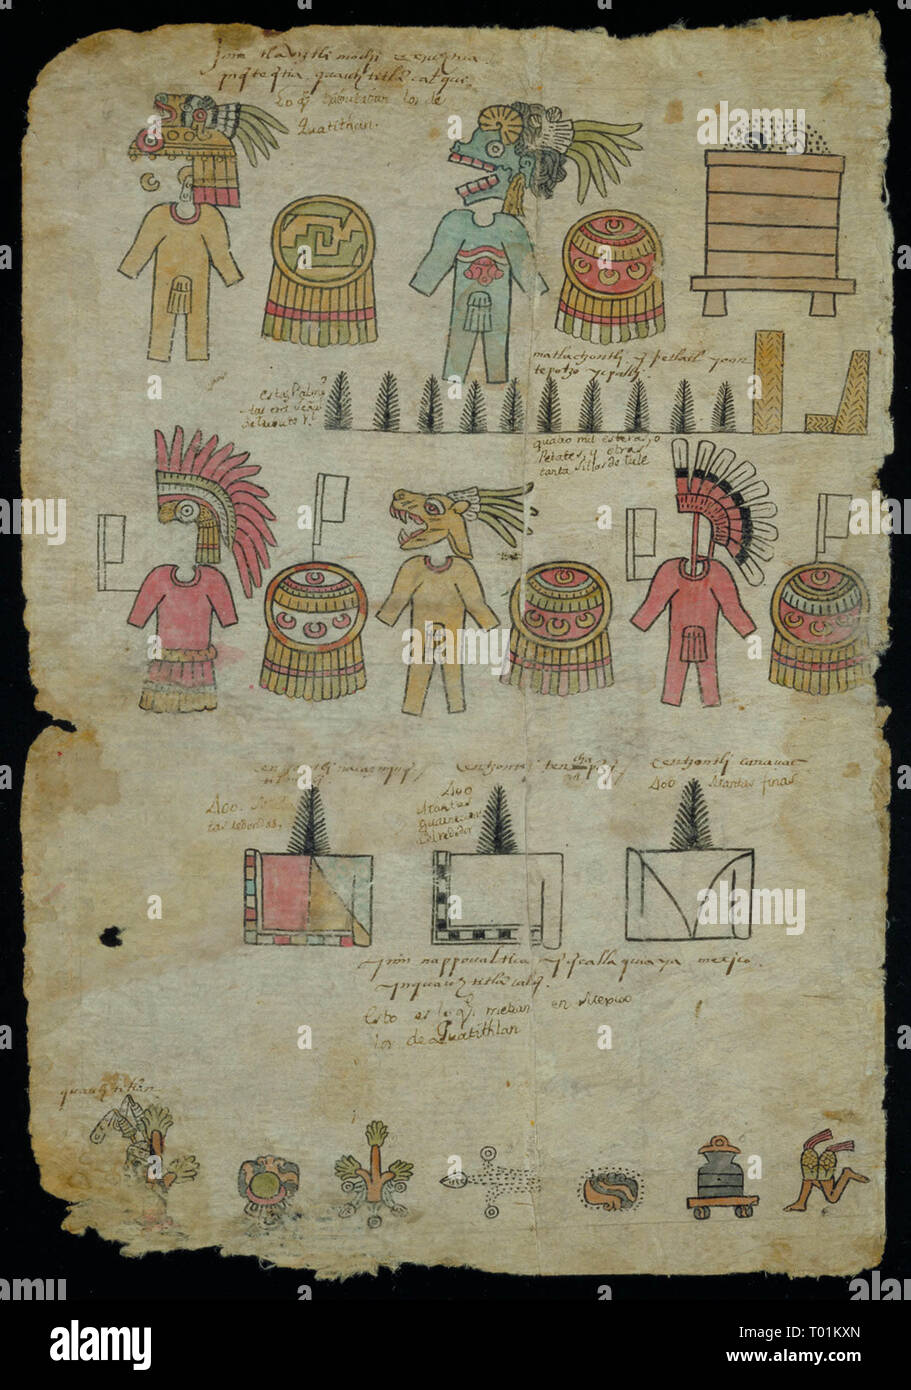 A Matrícula de tributos, dating from 1522-1530 CE. It is written in Classical Nahuatl and was found in Mexico City Stock Photo